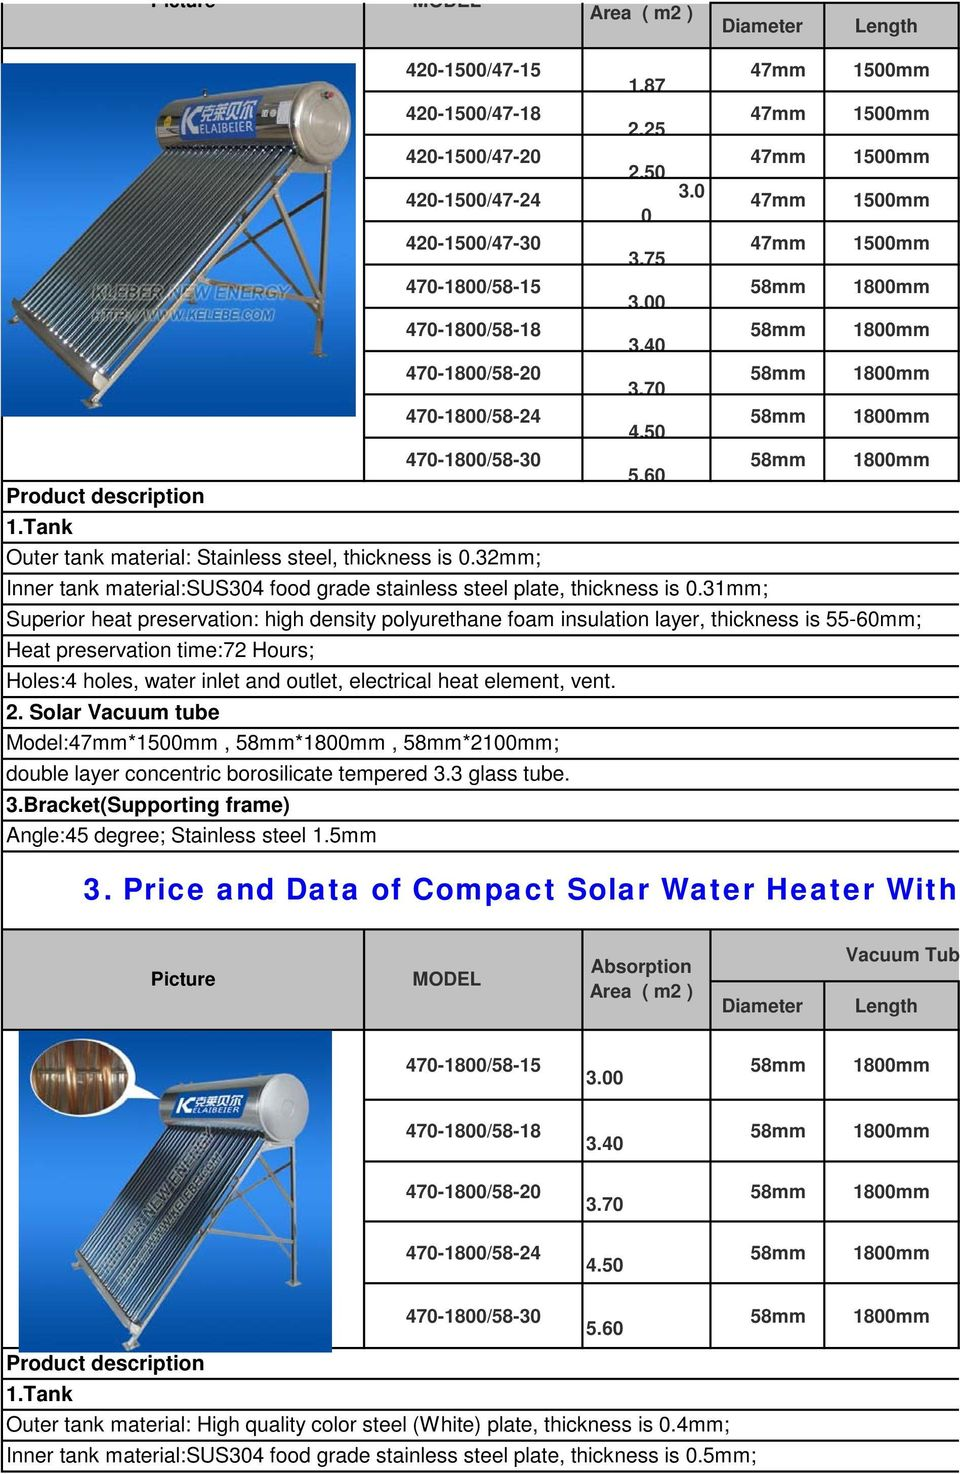 Tank Outer tank material: Stainless steel, thickness is 0.32mm; Inner tank material:sus304 food grade stainless steel plate, thickness is 0.